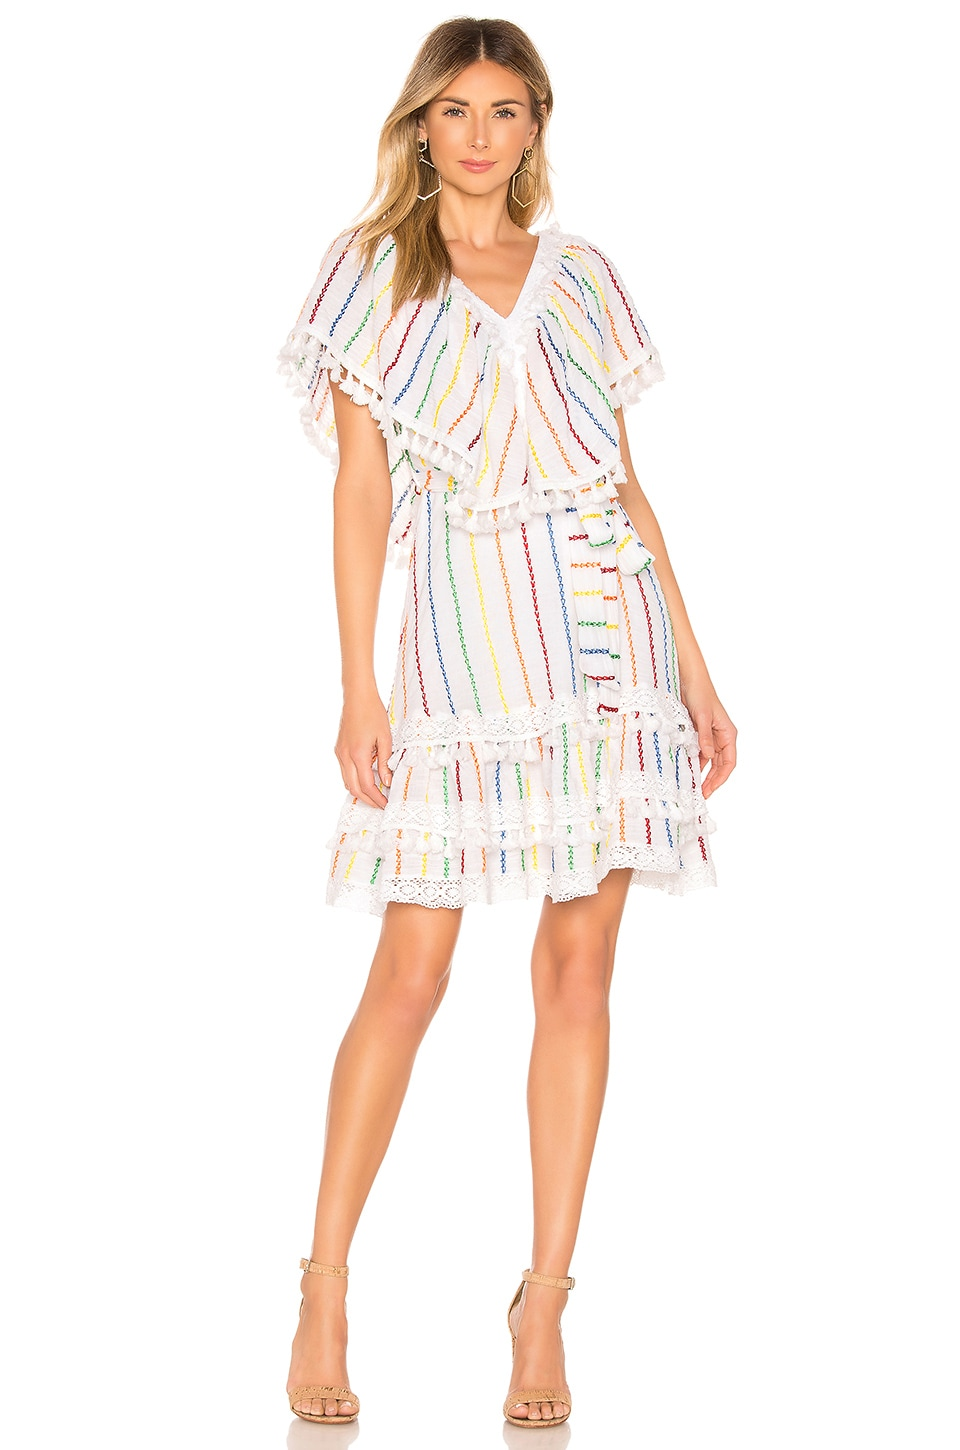 Place Nationale Tende Wing Sleeve Mini Dress in White Candy Stripe